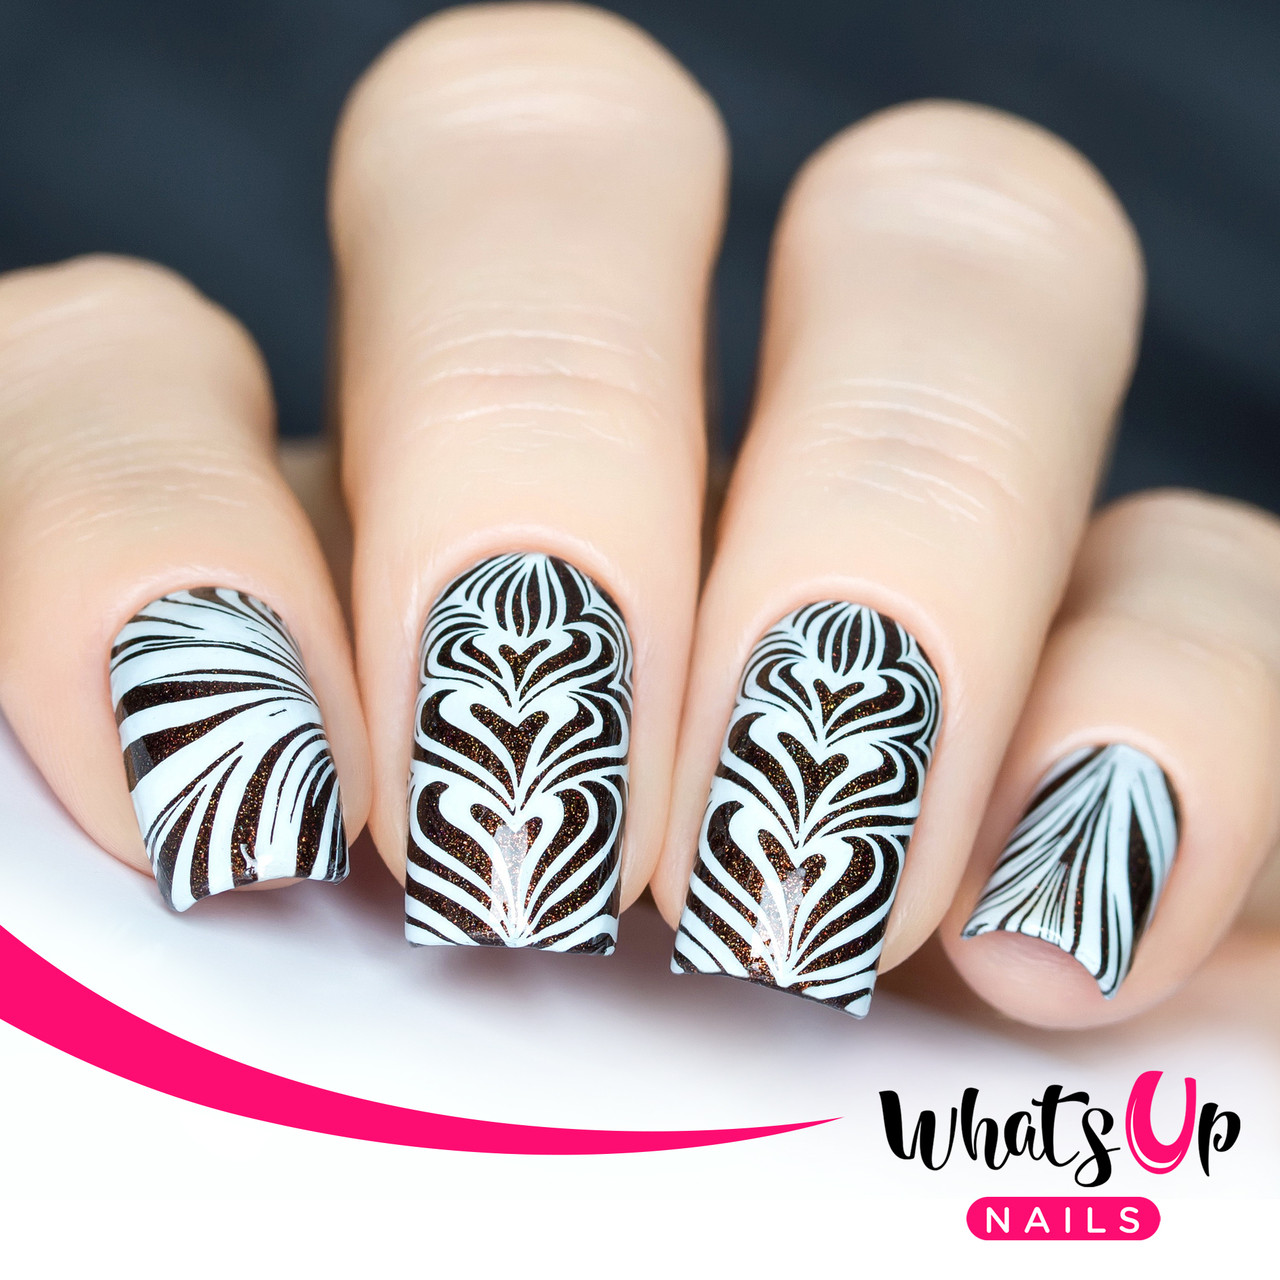 Whats Up Nails - B002 Water Marble to Perfection - Mini Nail ...